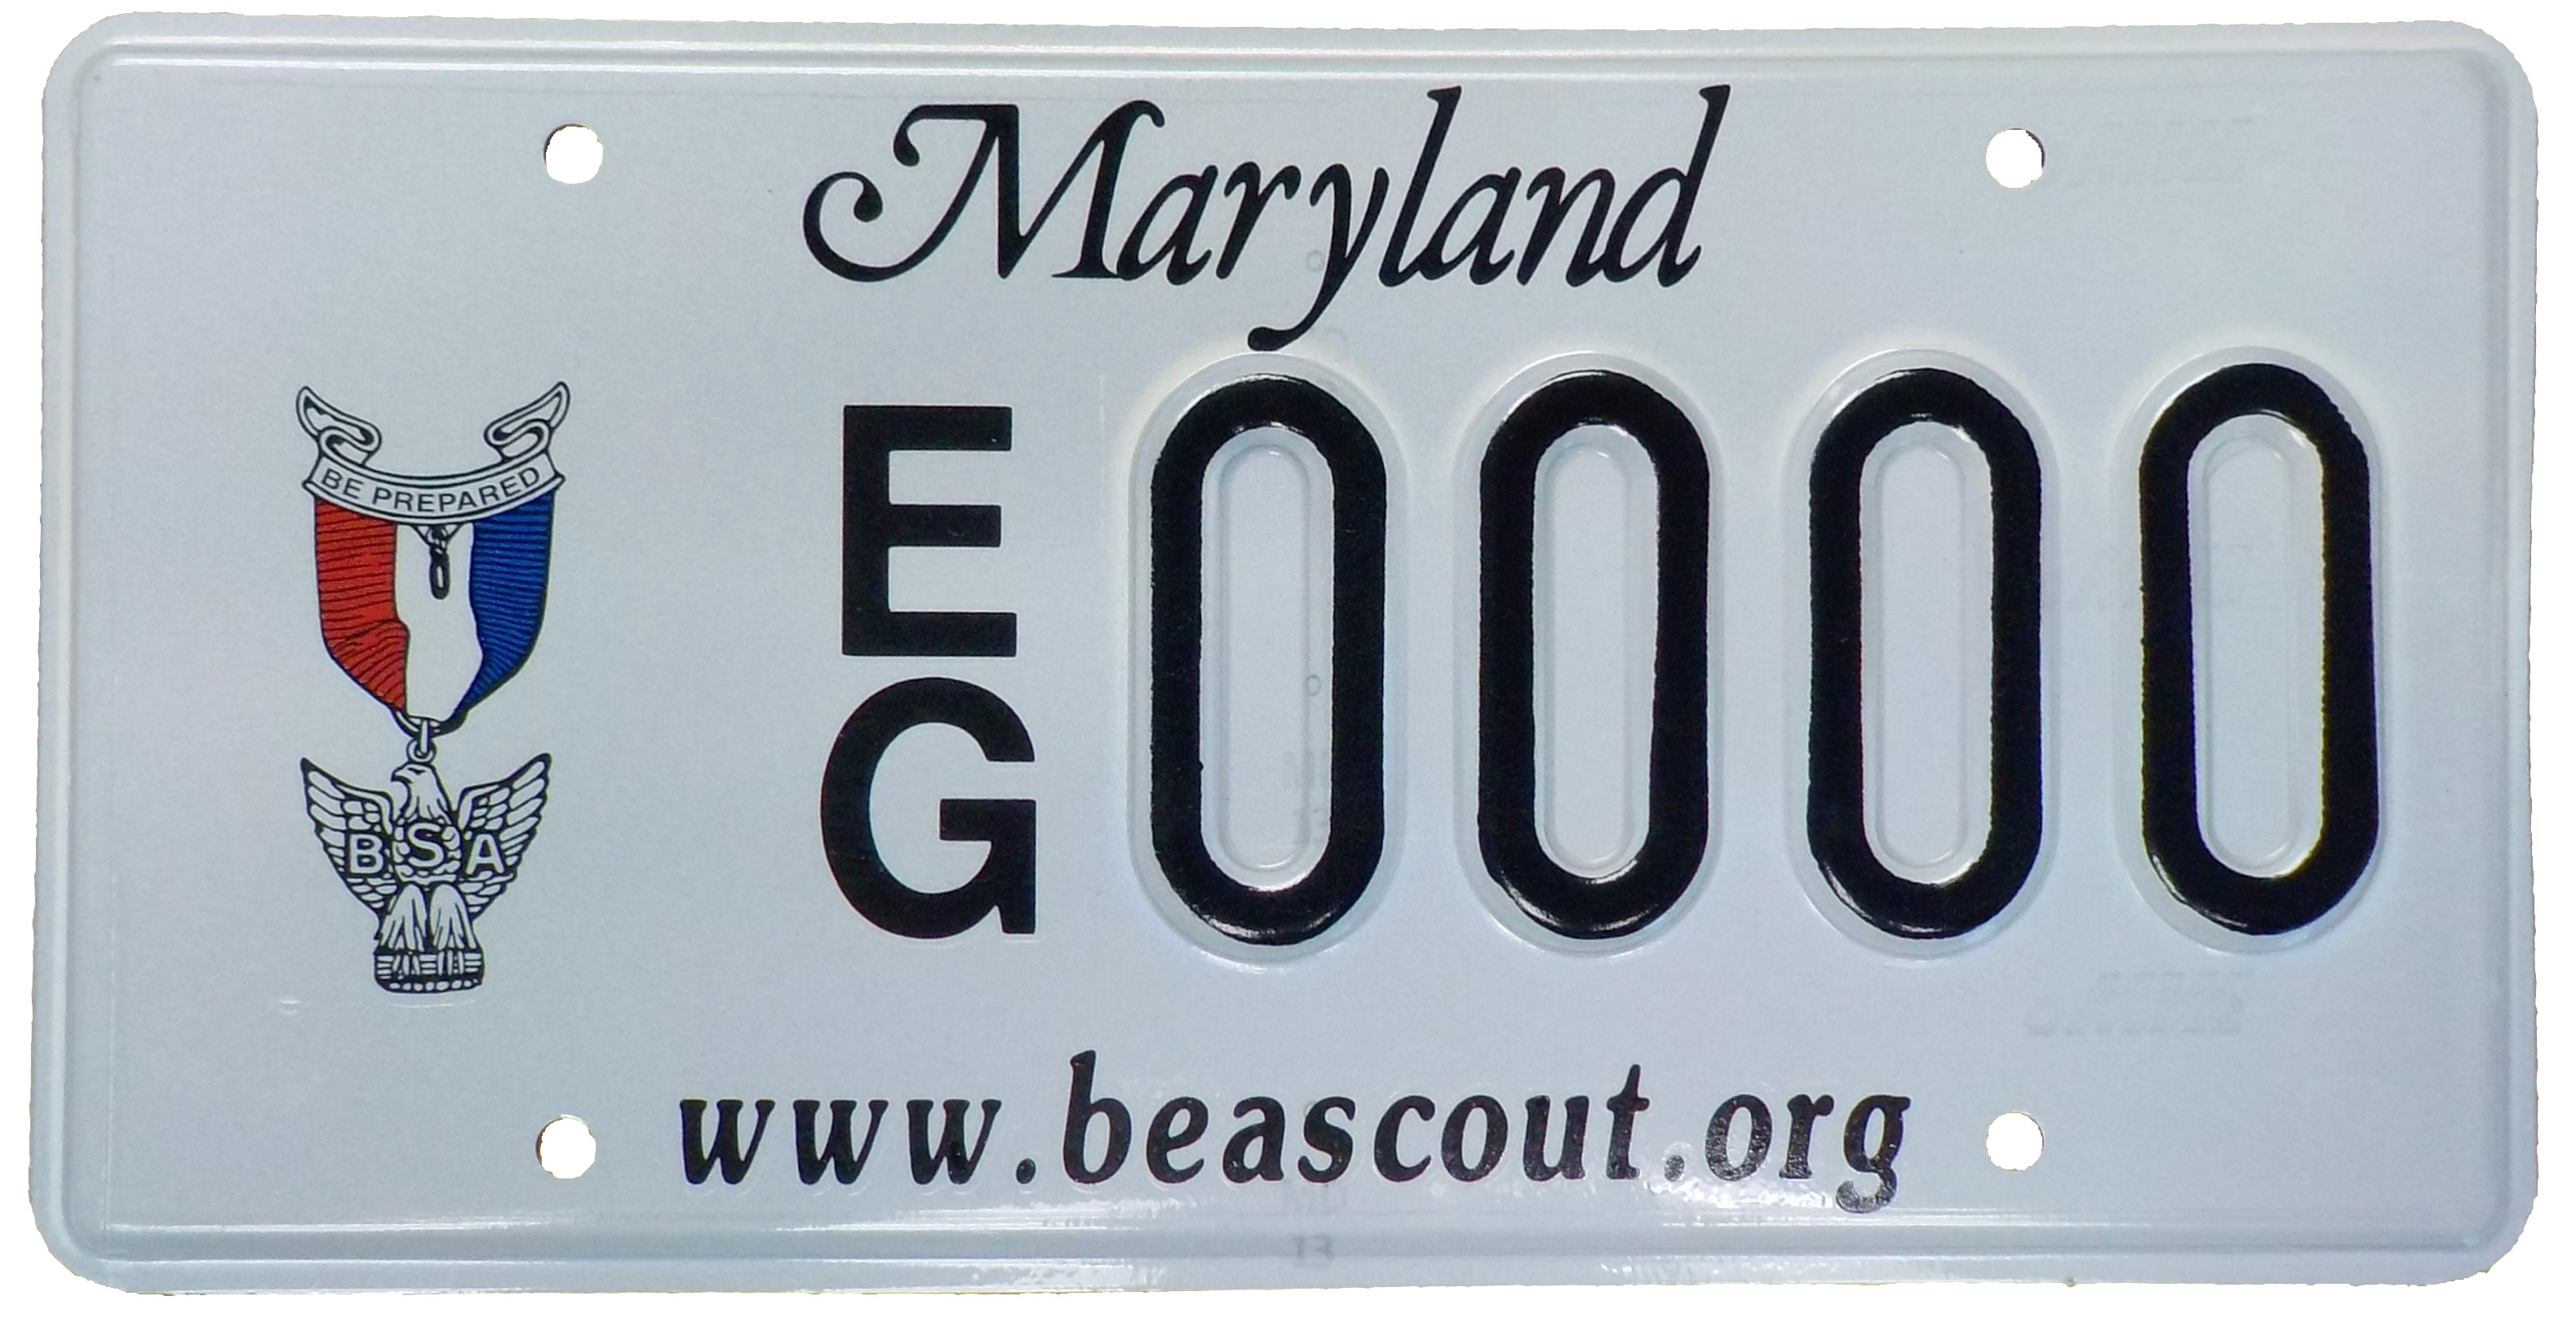 Mock up of the new Eagle Scout MD state license plate